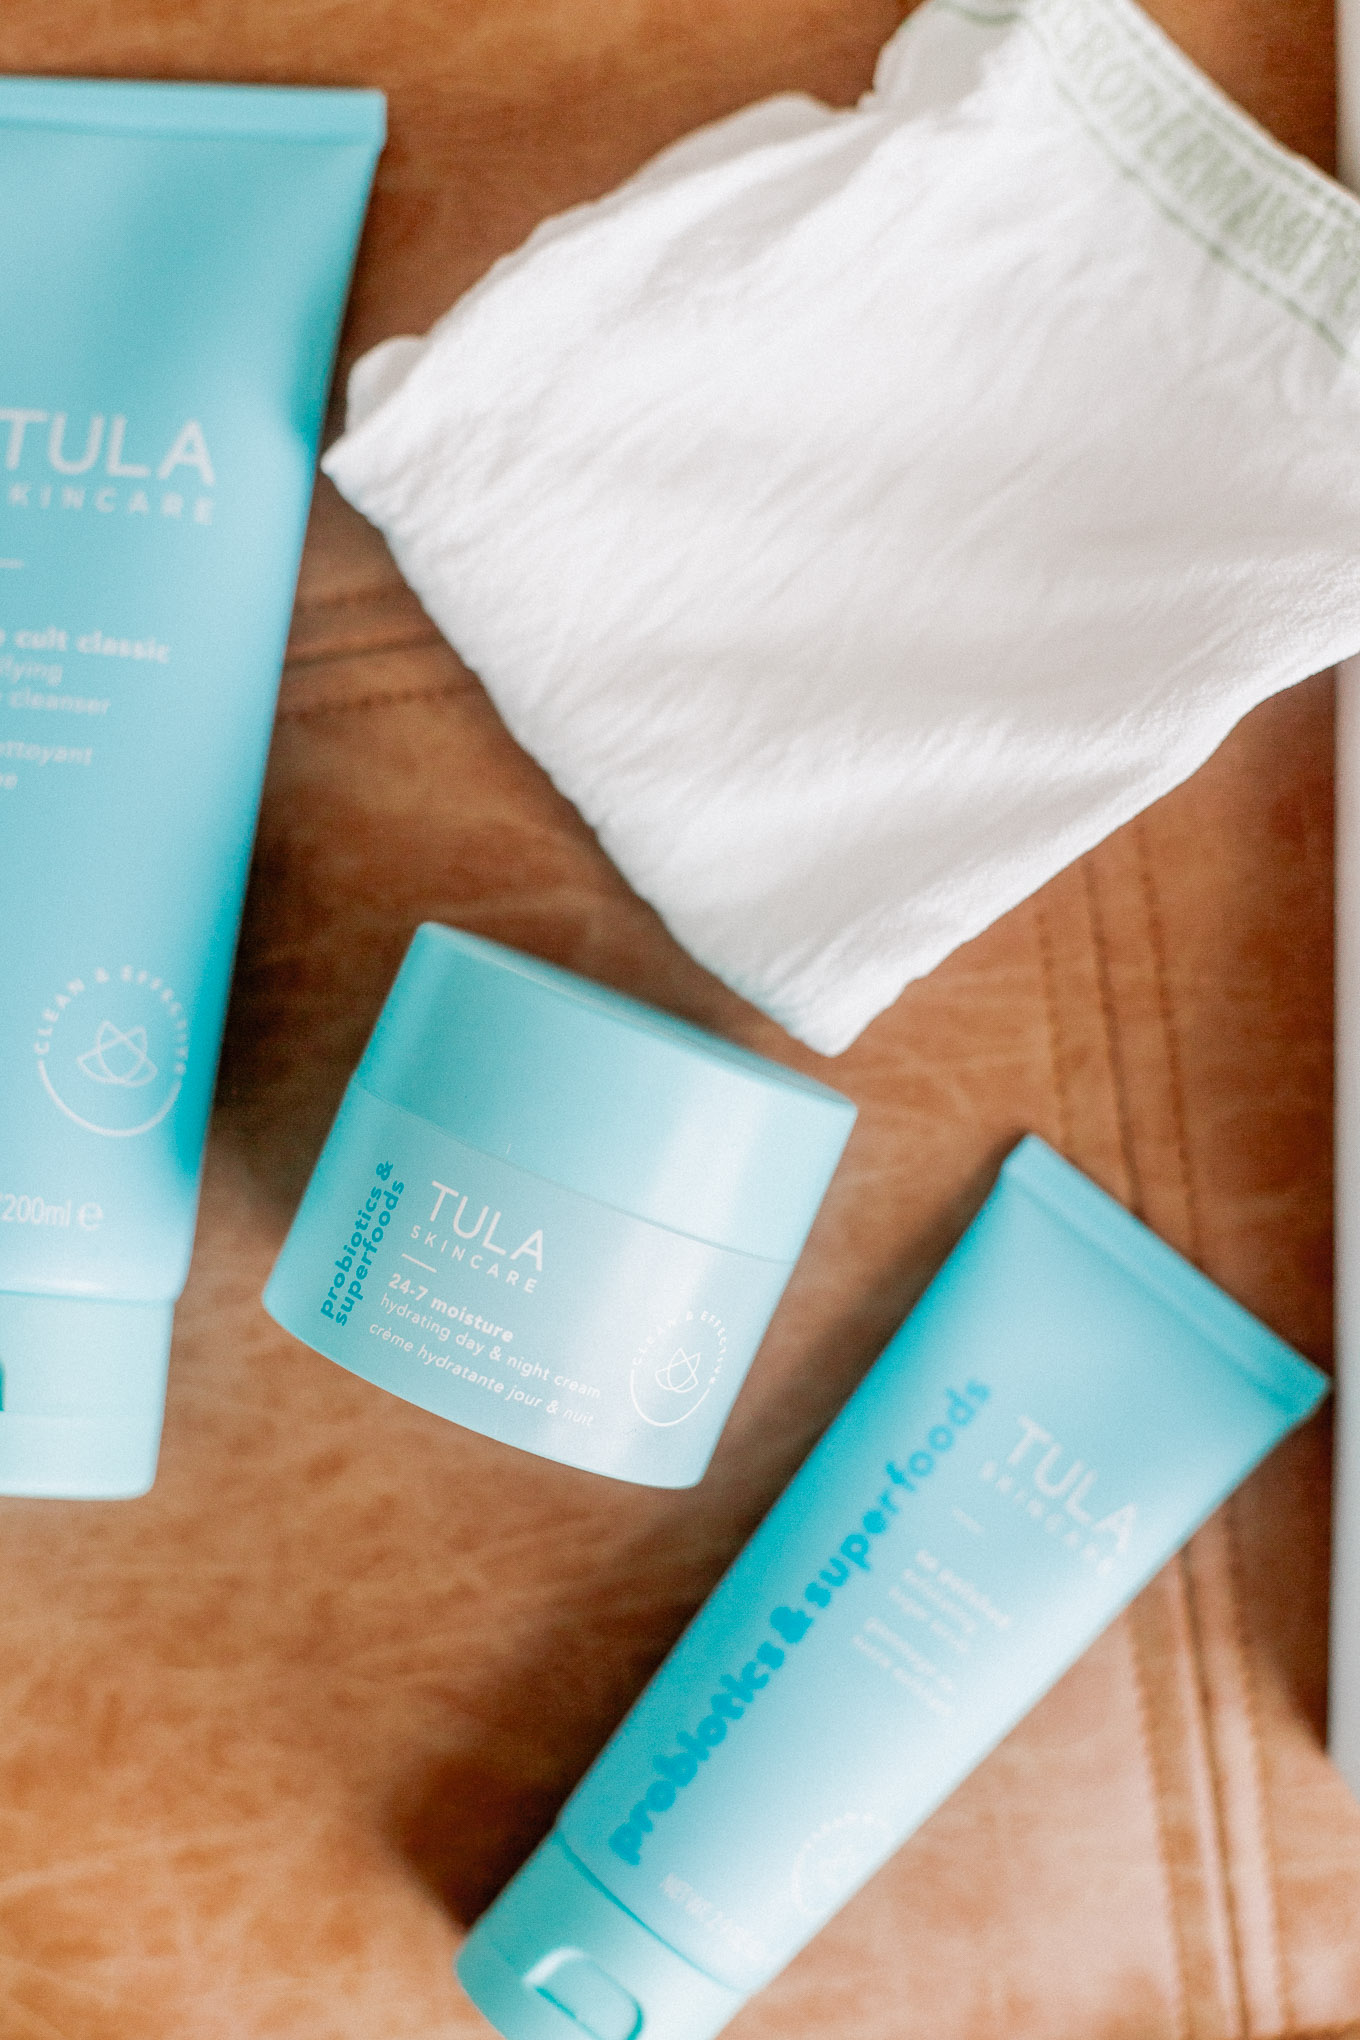 Day & Night Cream   Clean Beauty Products   TULA Review   Louella Reese